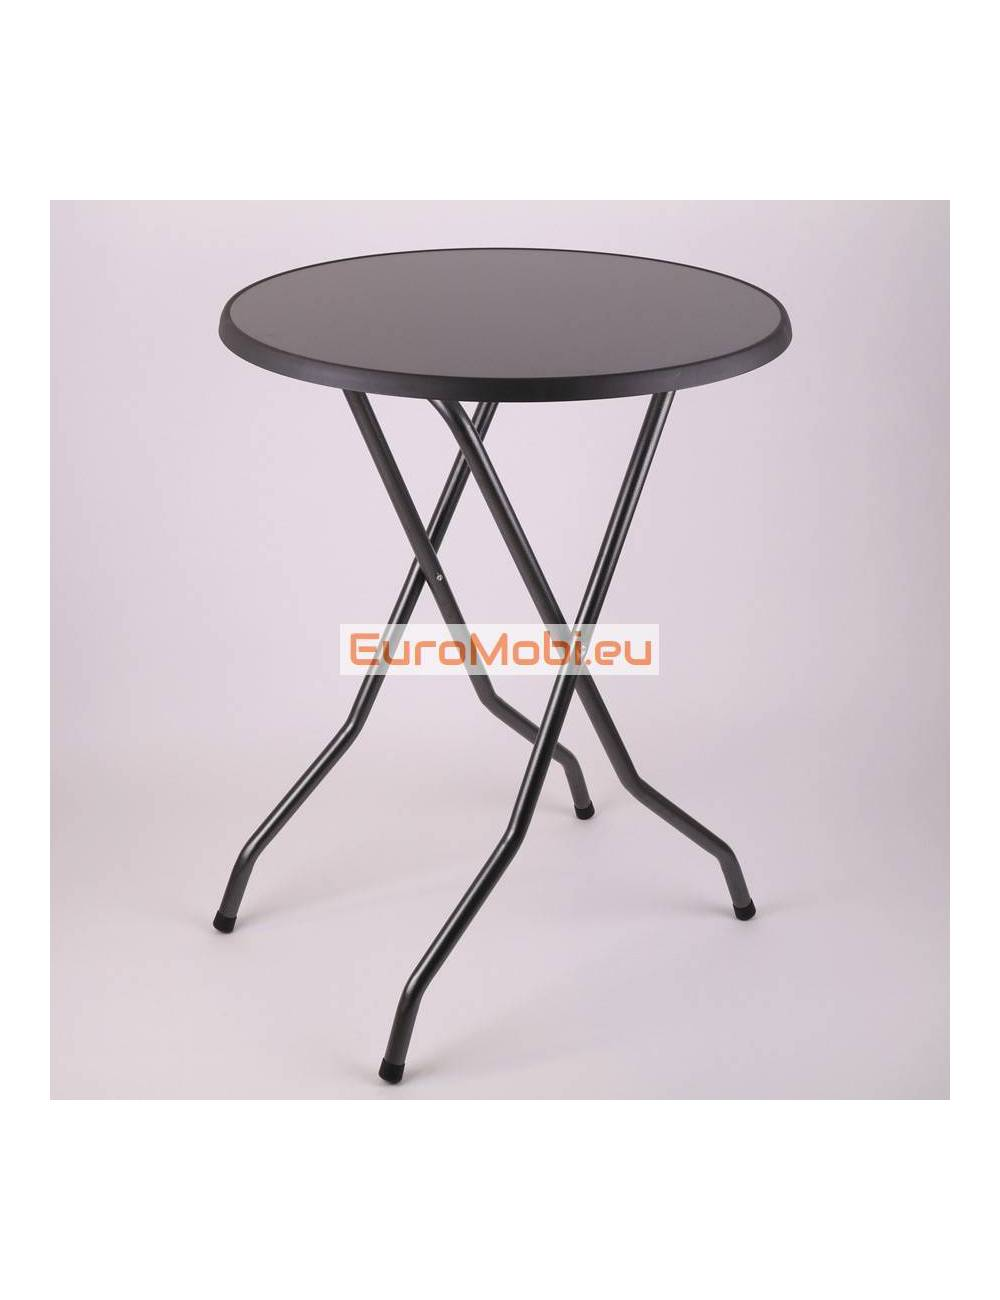 Melin Anthracite standing table Ø80cm open